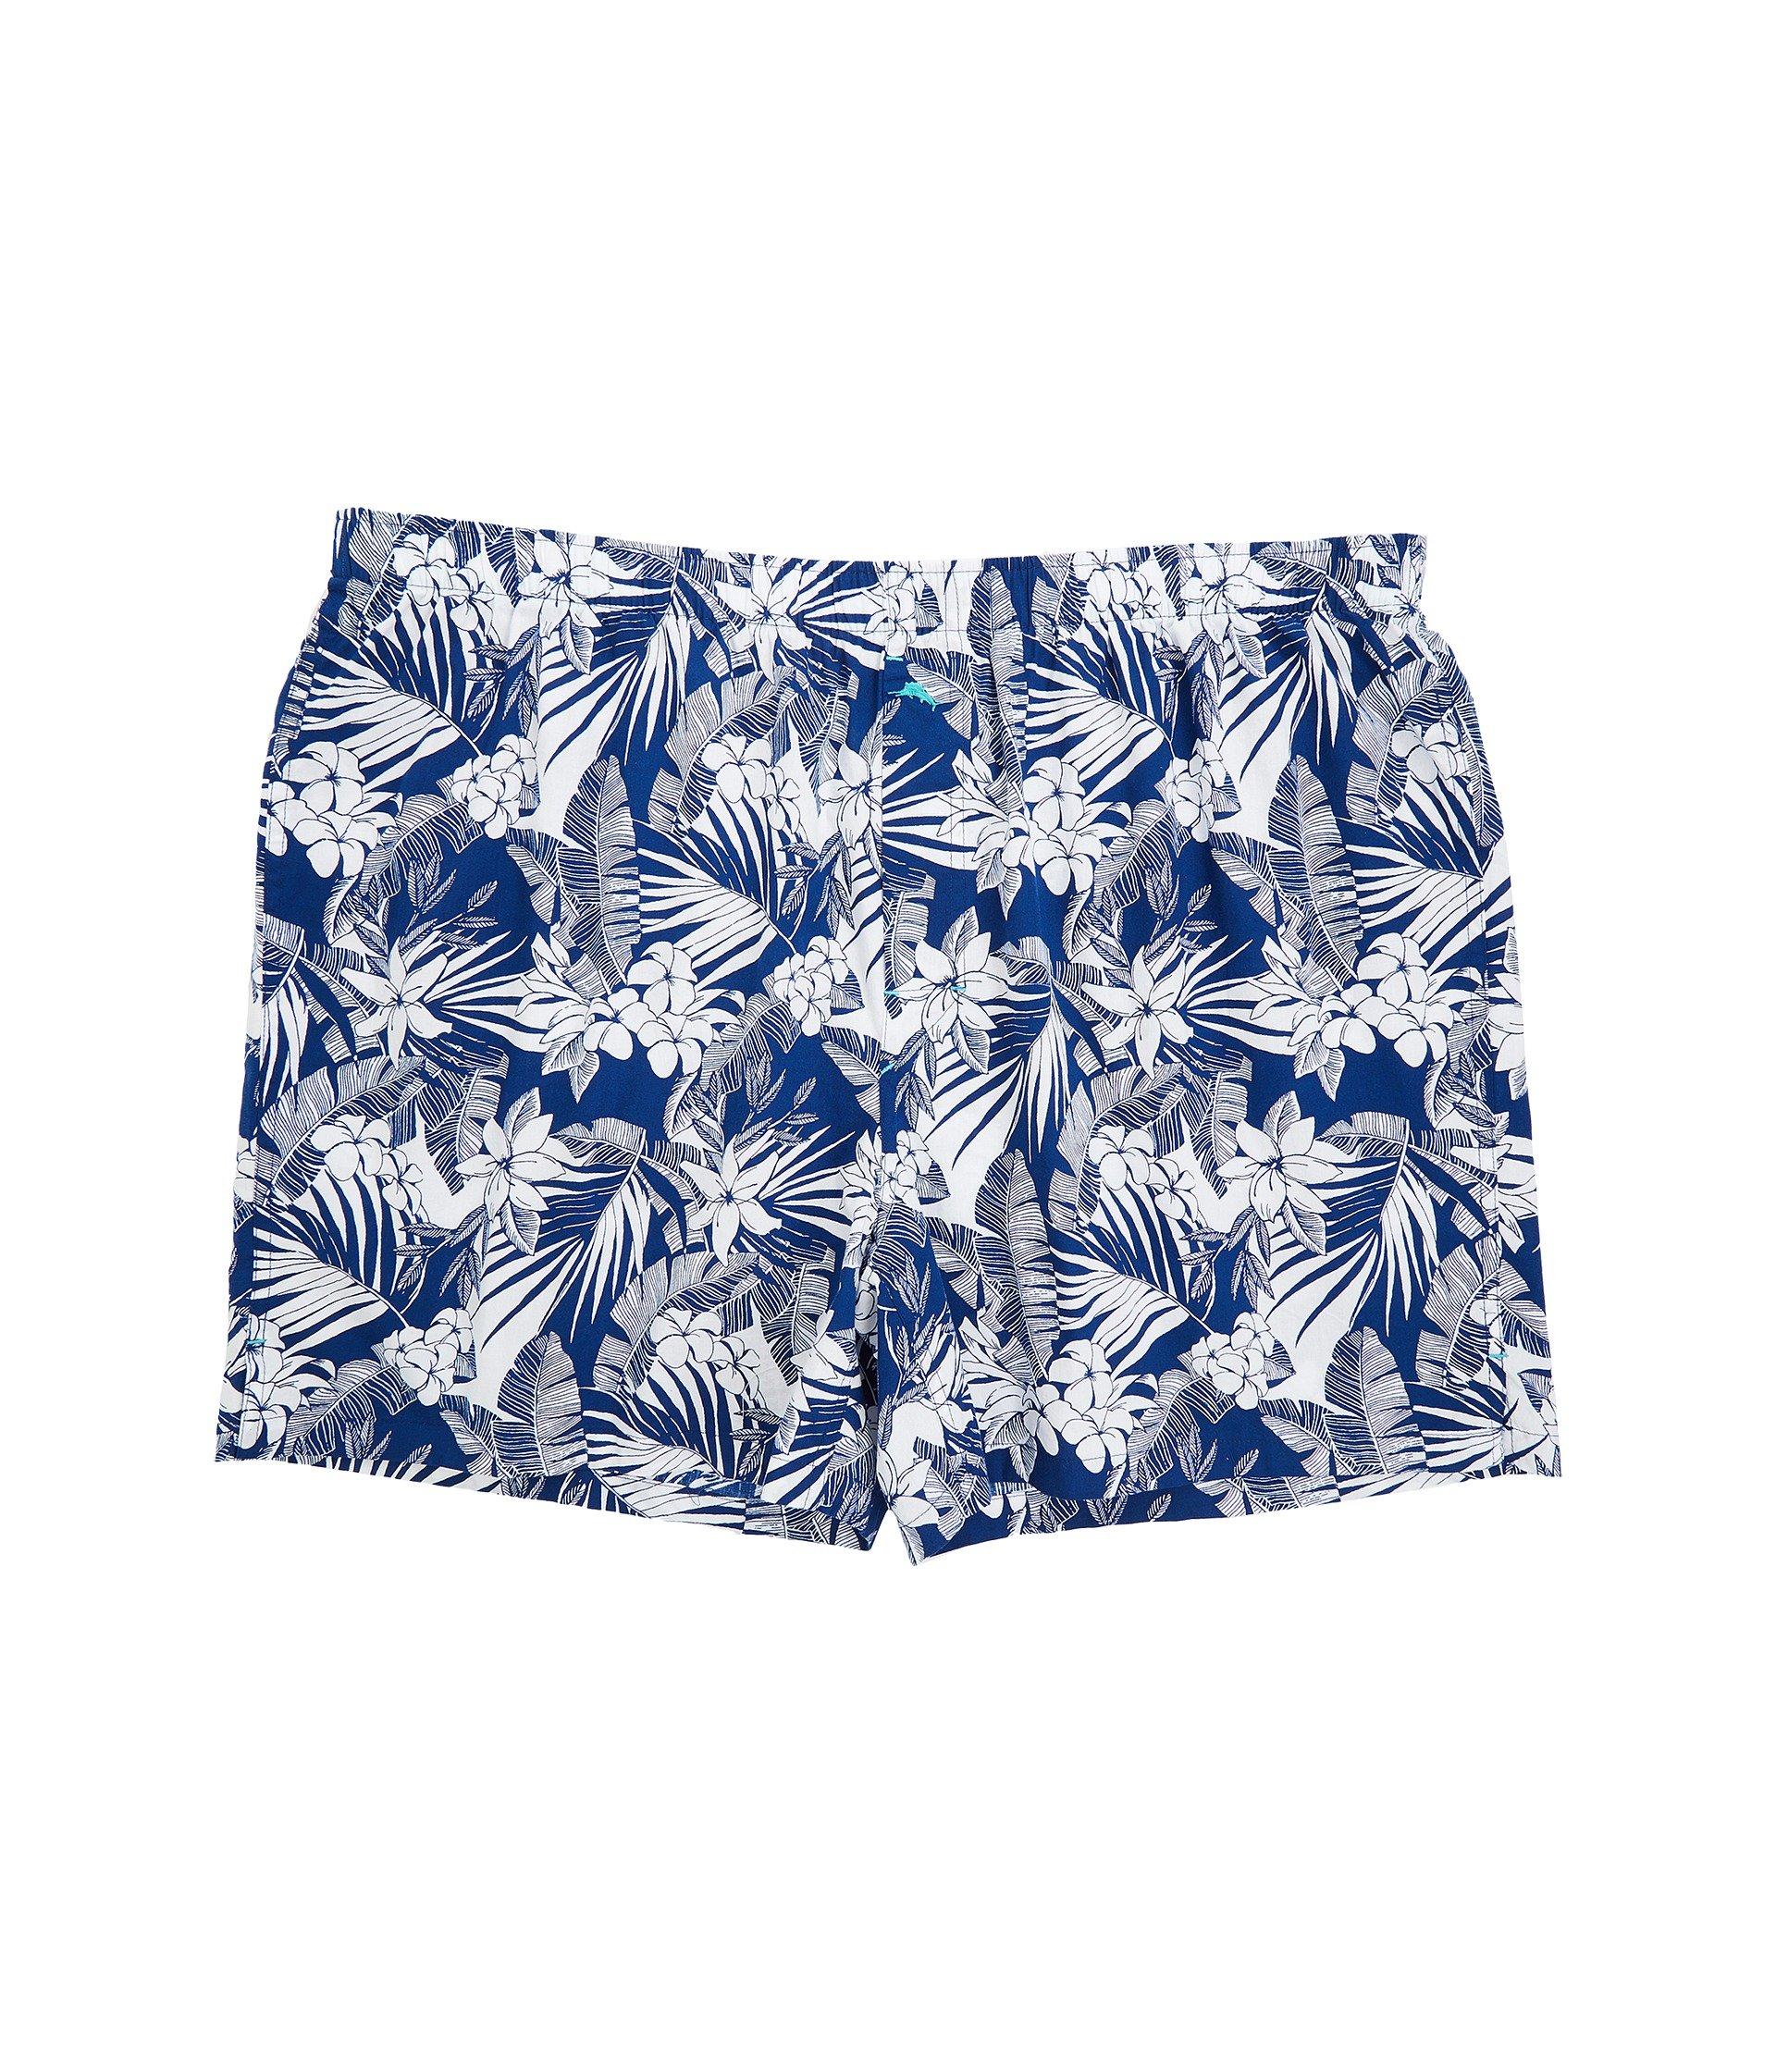 Ropa Interior para Hombre Tommy Bahama Woven Boxer - Big  + Tommy Bahama en VeoyCompro.net